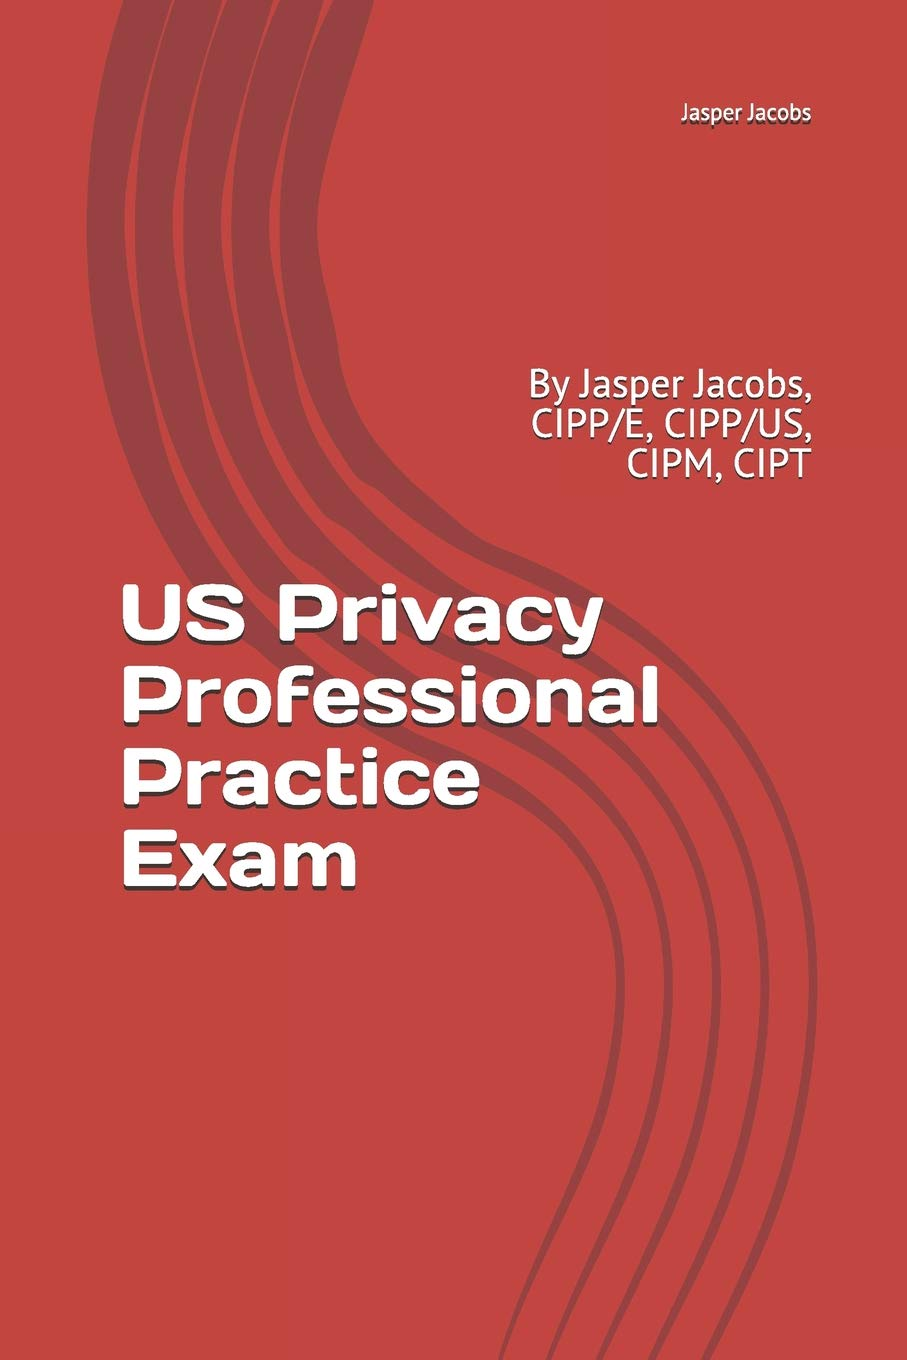 US Privacy Professional Practice Exam  By Jasper Jacobs CIPP E CIPP US CIPM CIPT